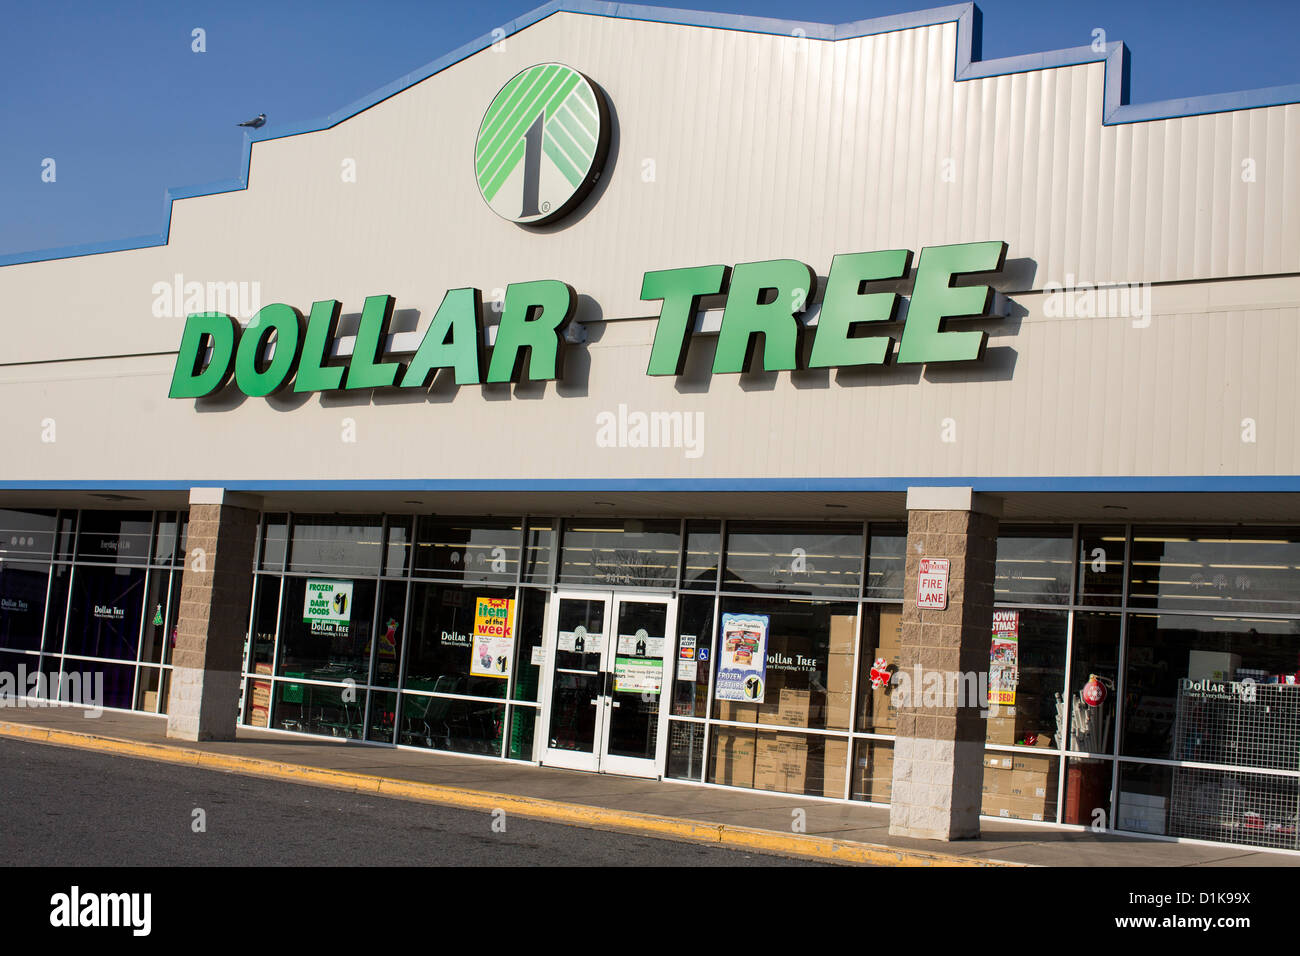 A Dollar Tree retail store.  - Stock Image